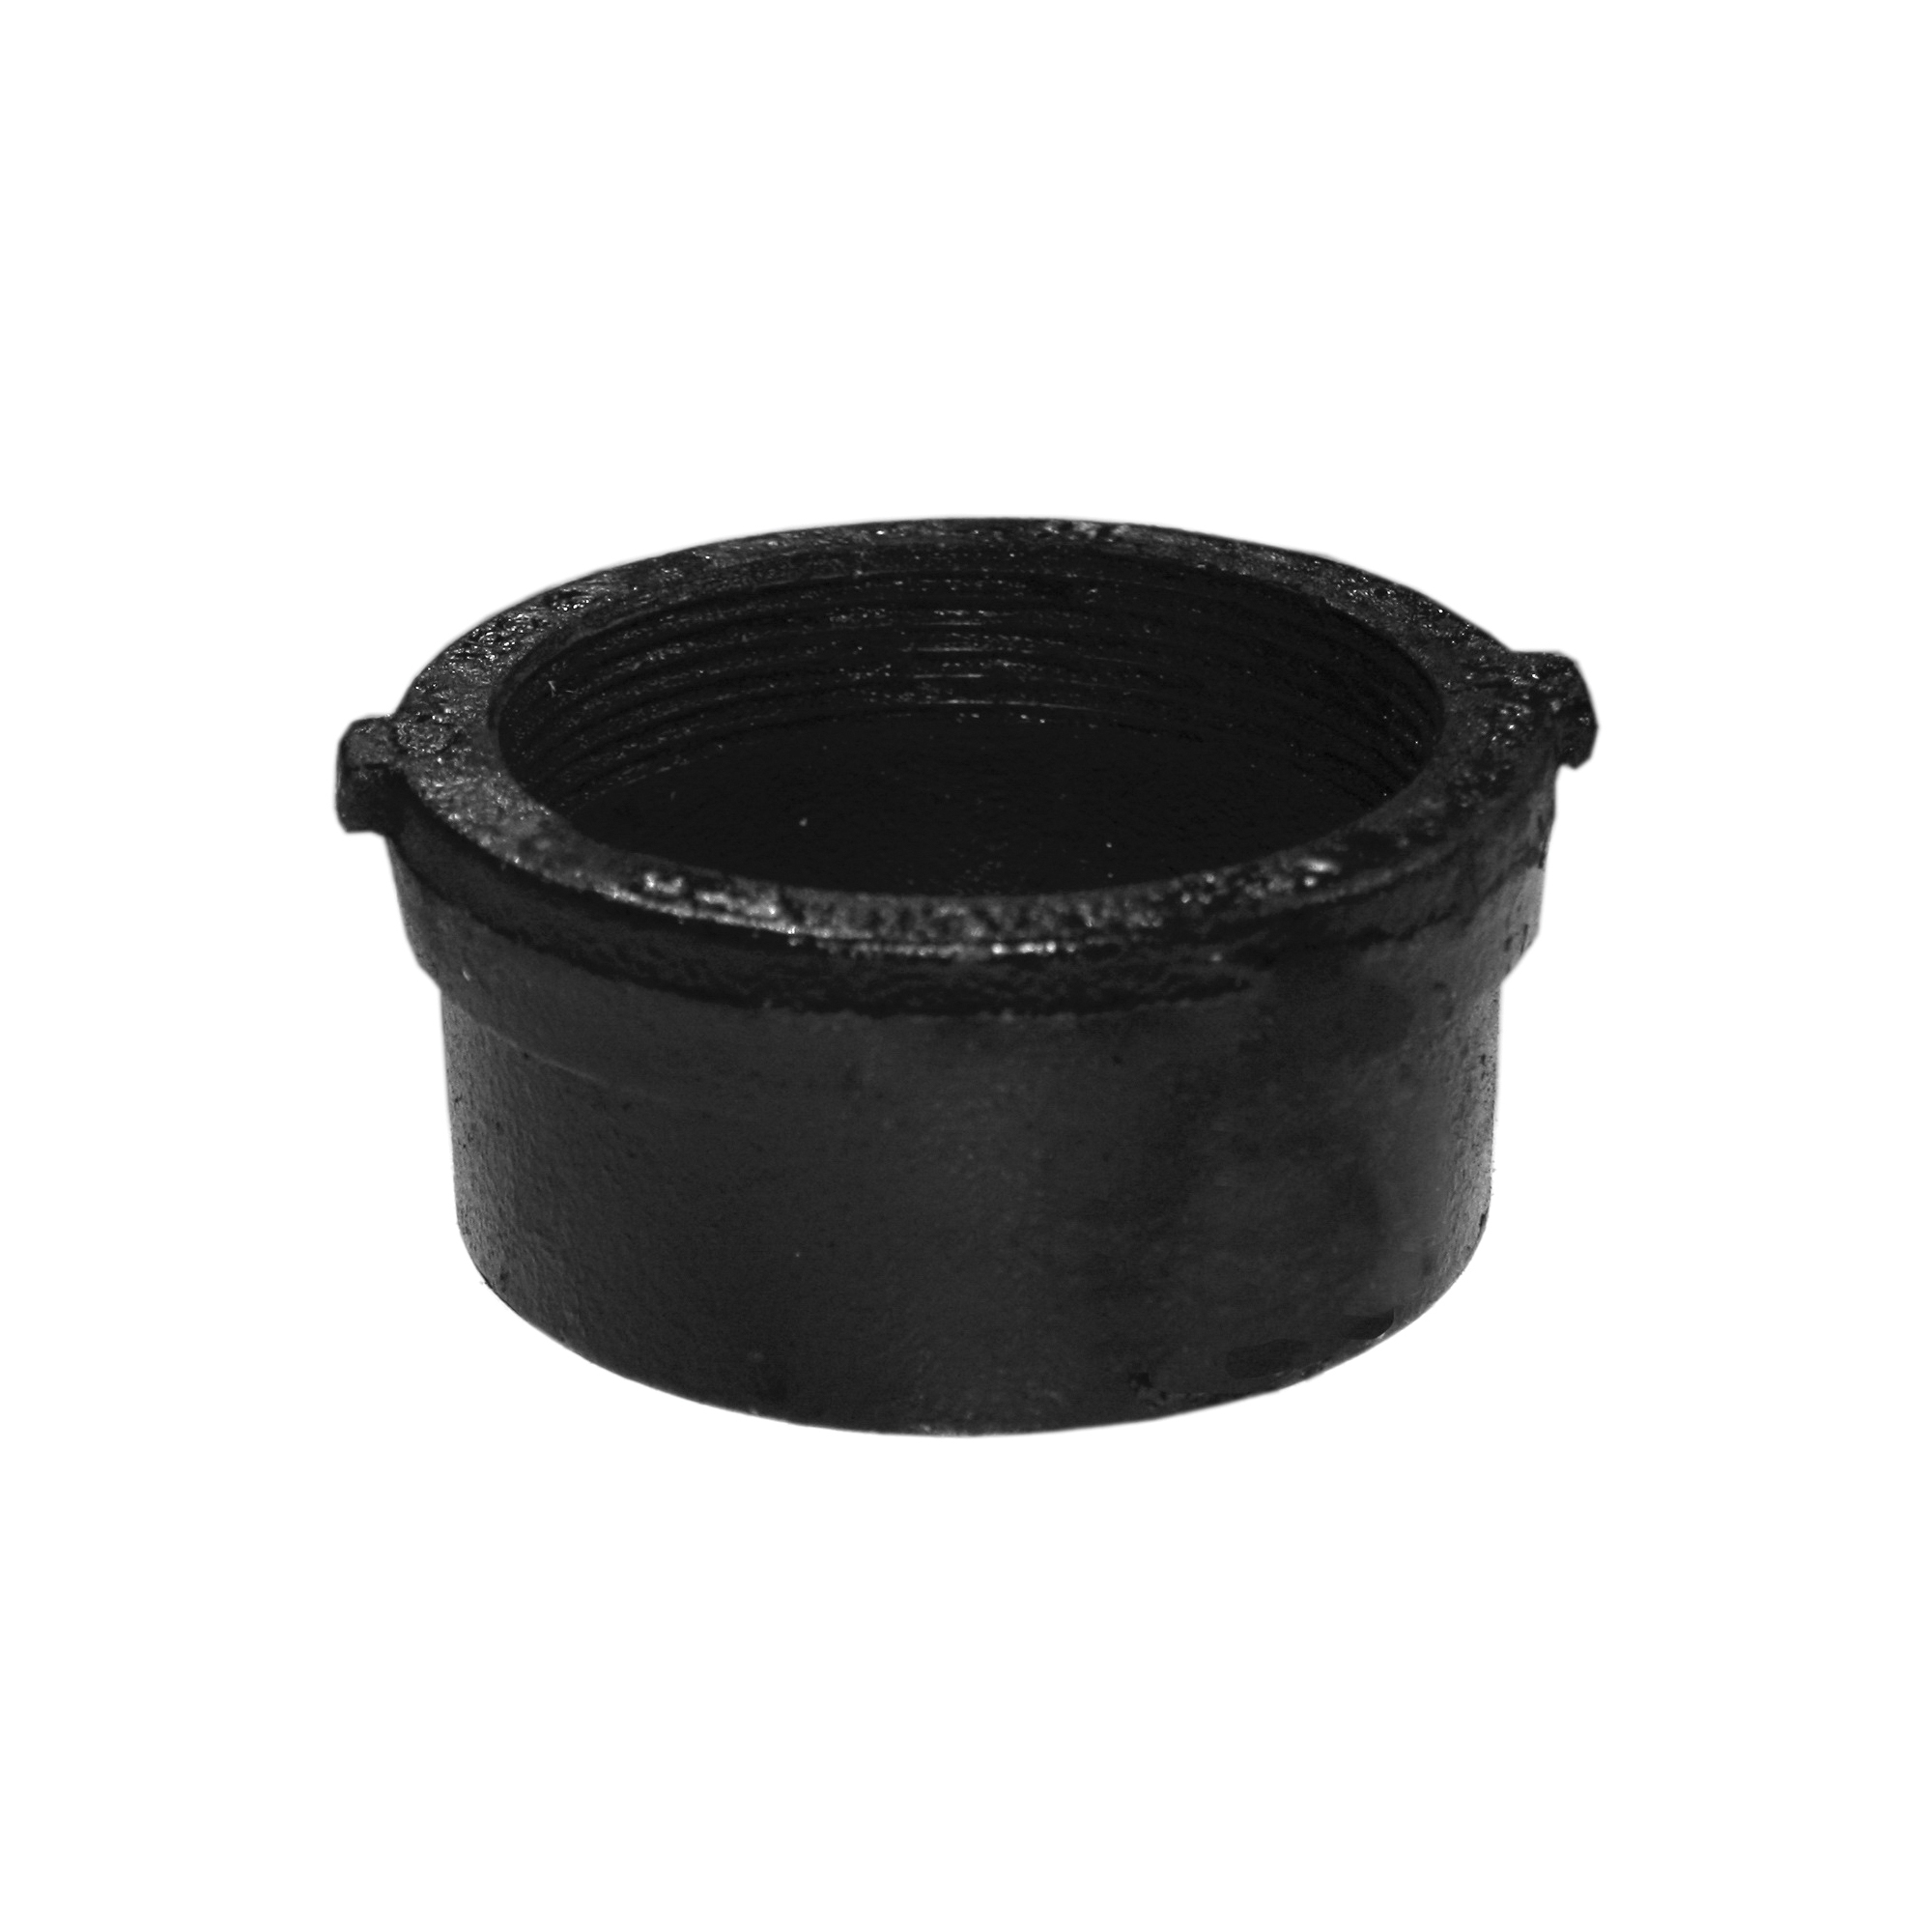 Tyler Pipe 009979 No-Hub Cleanout Ferrule, 2 in, Cast Iron, Domestic